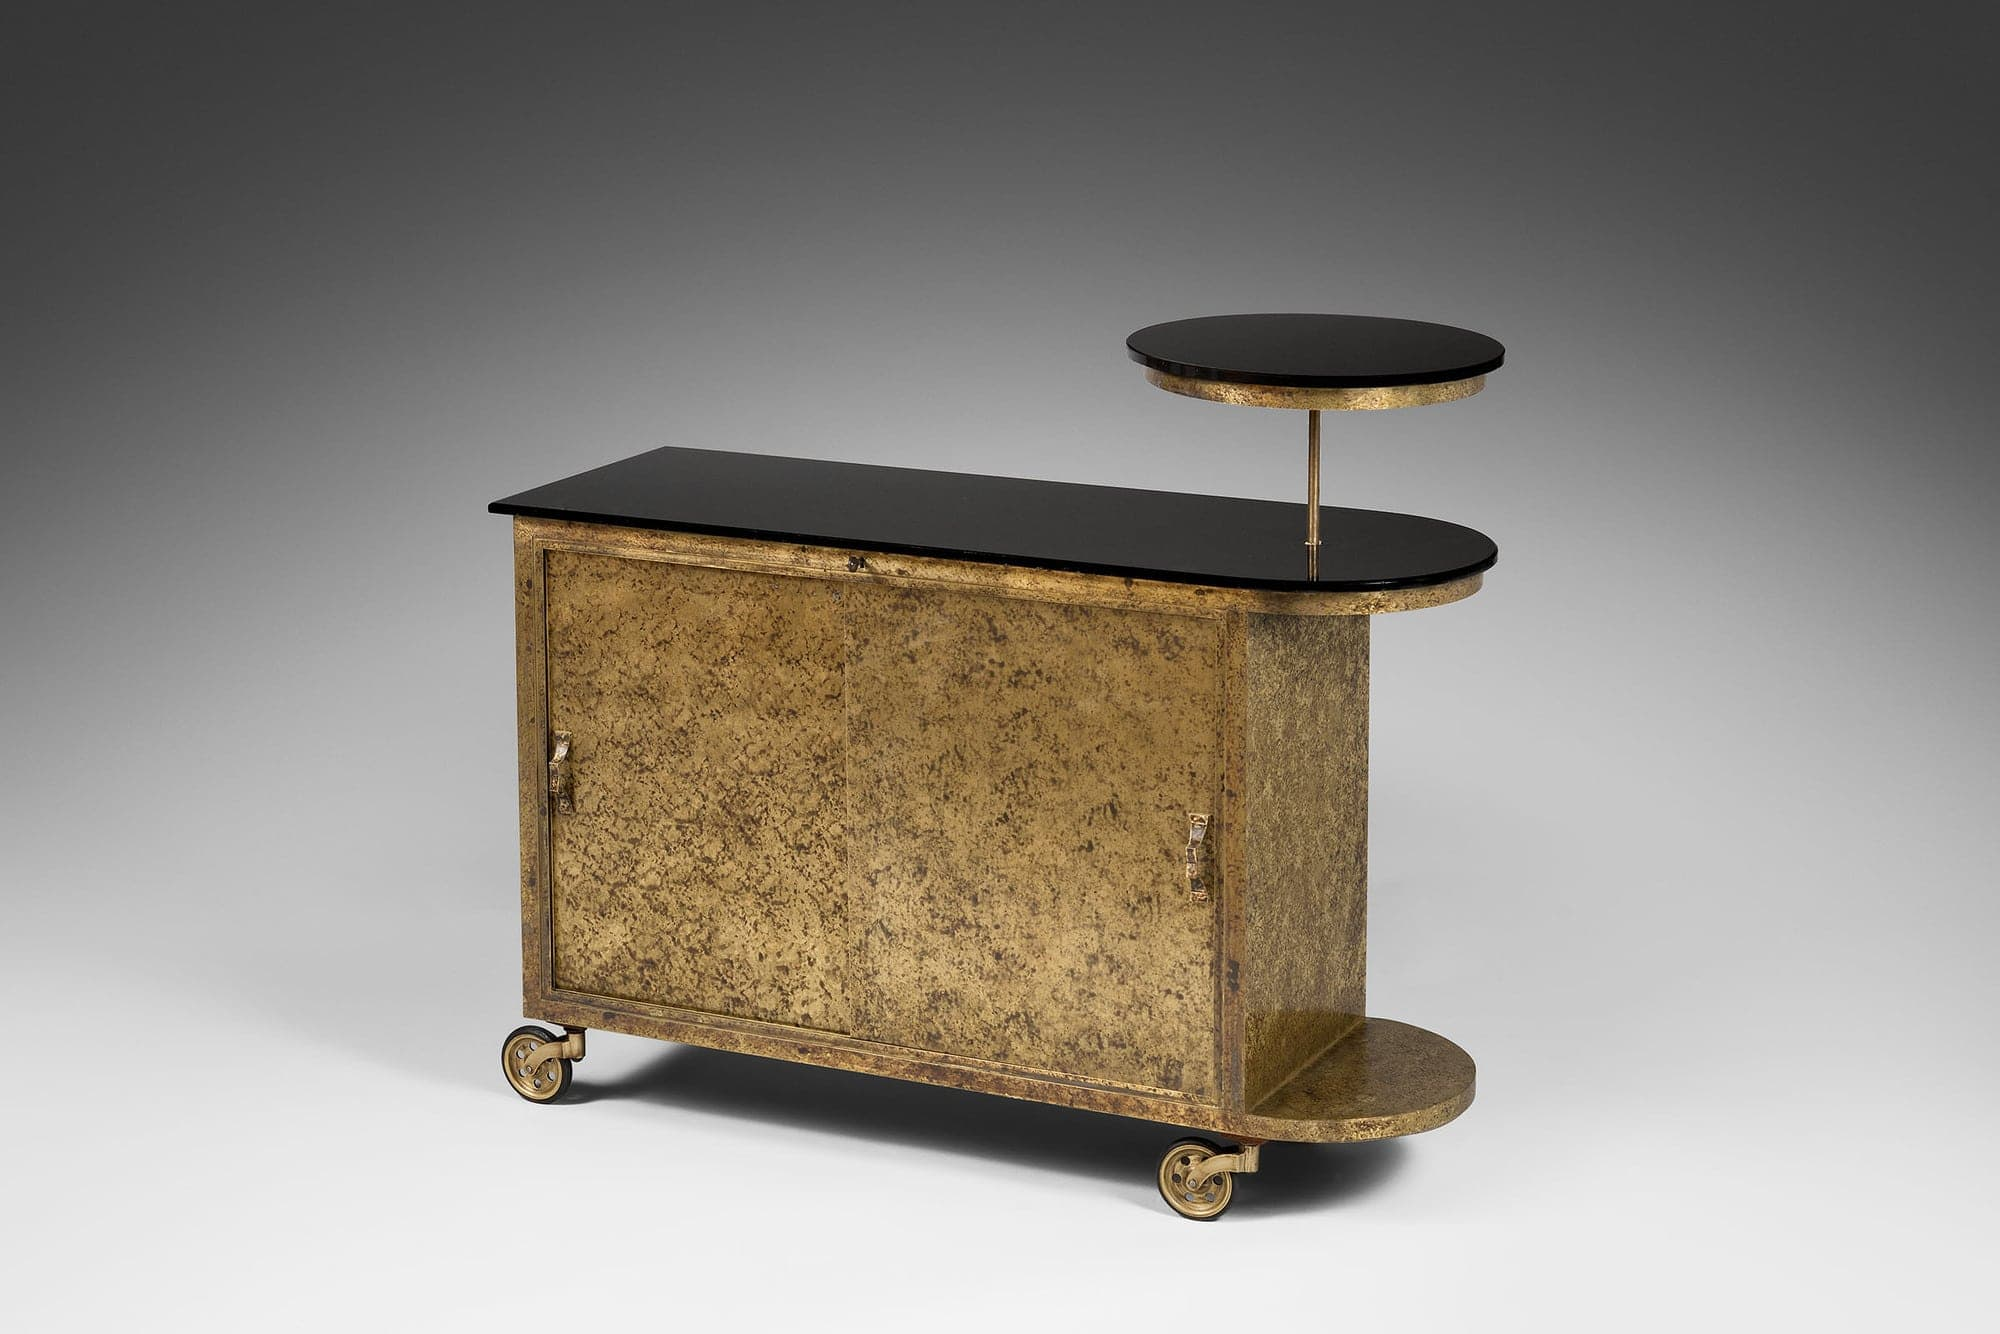 Eugène Printz, Rare dessert trolley forming bar on wheels (Sold), vue 02